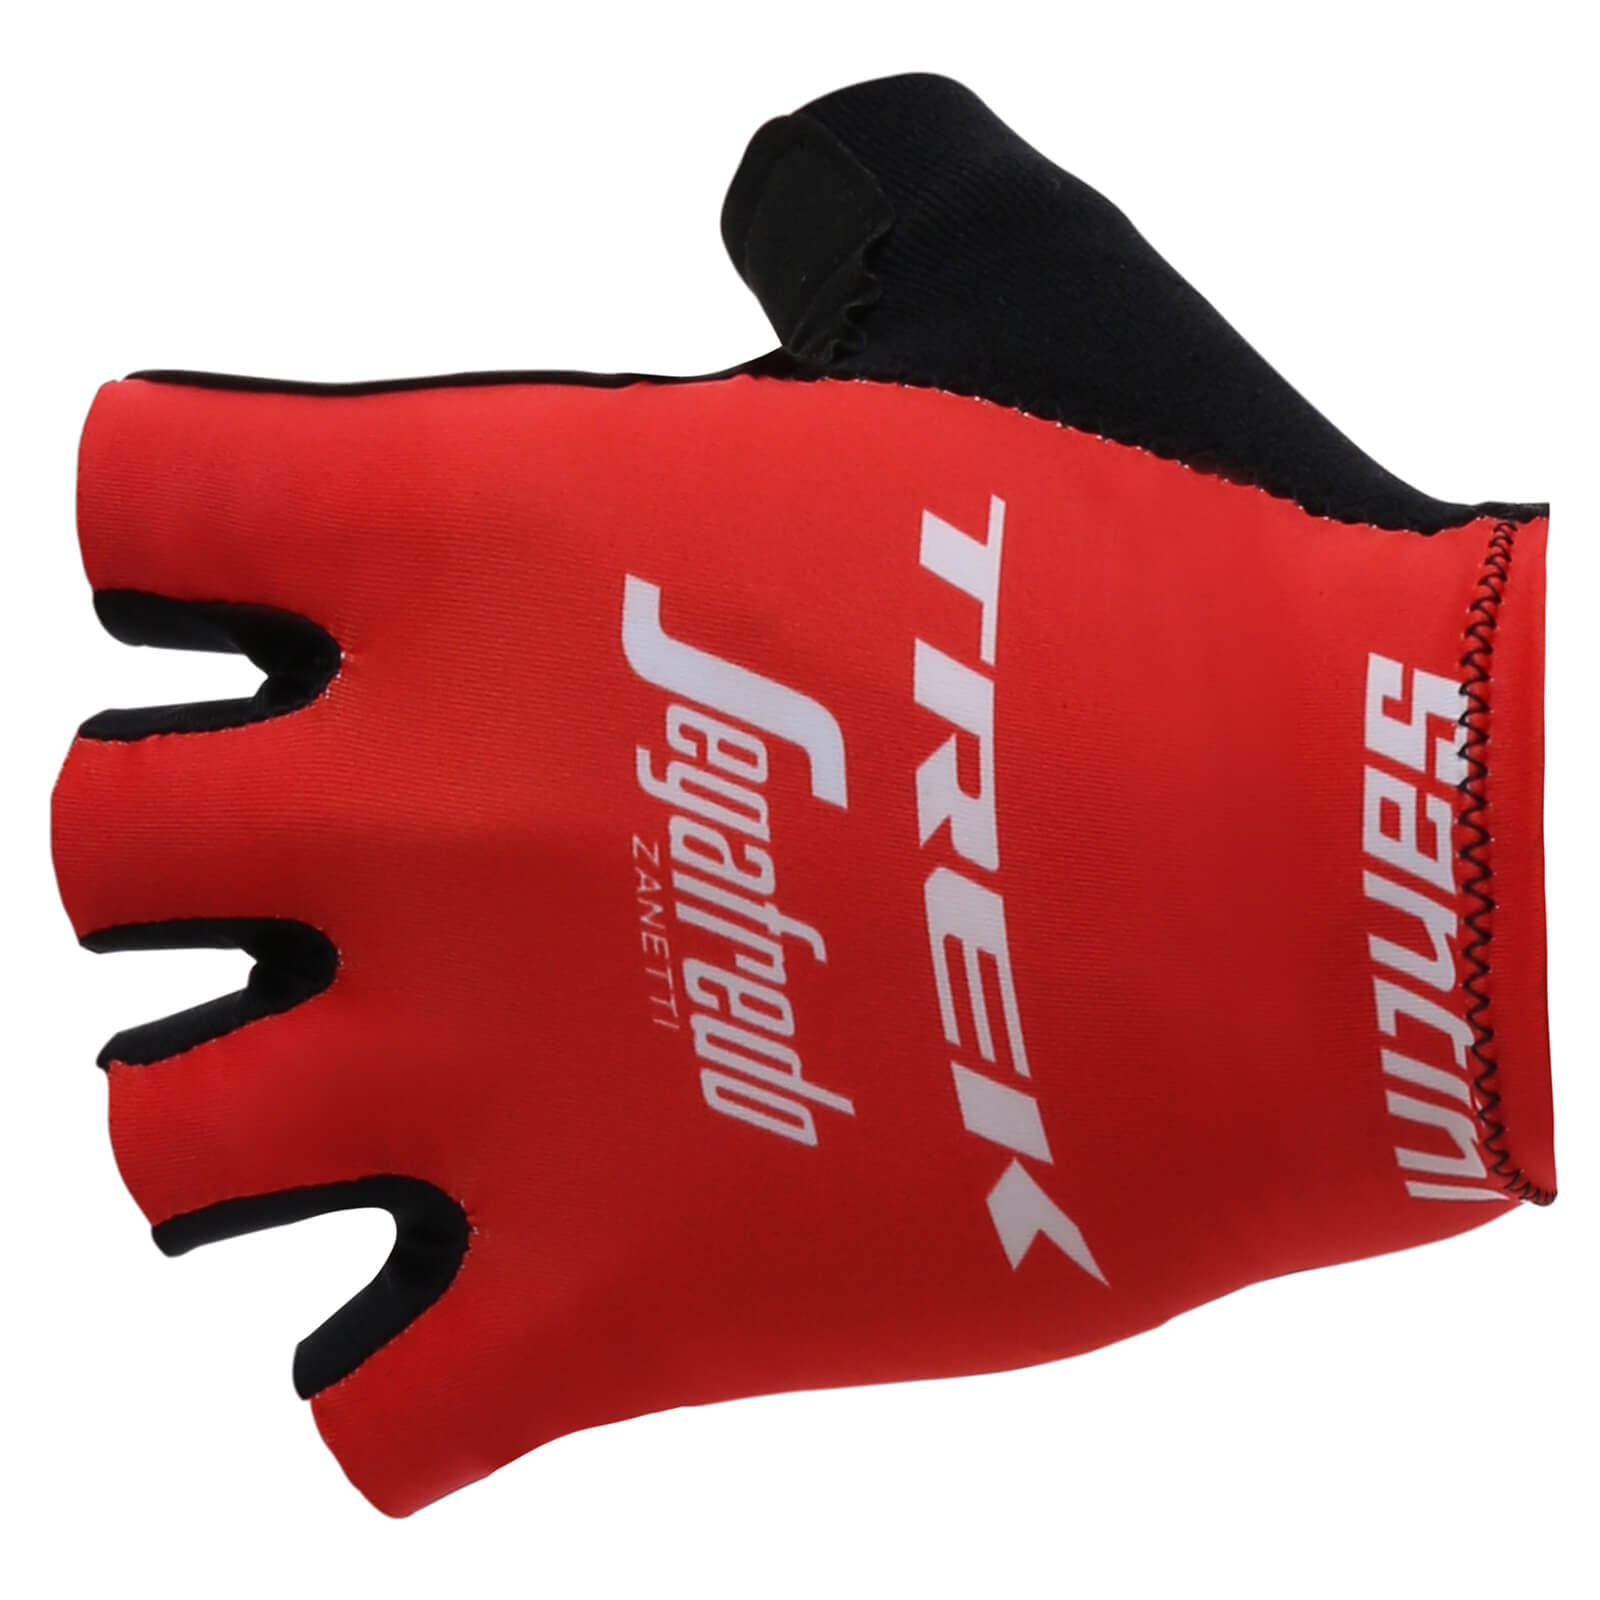 Santini Trek-Segafredo 18 Race Replica Gloves - Red